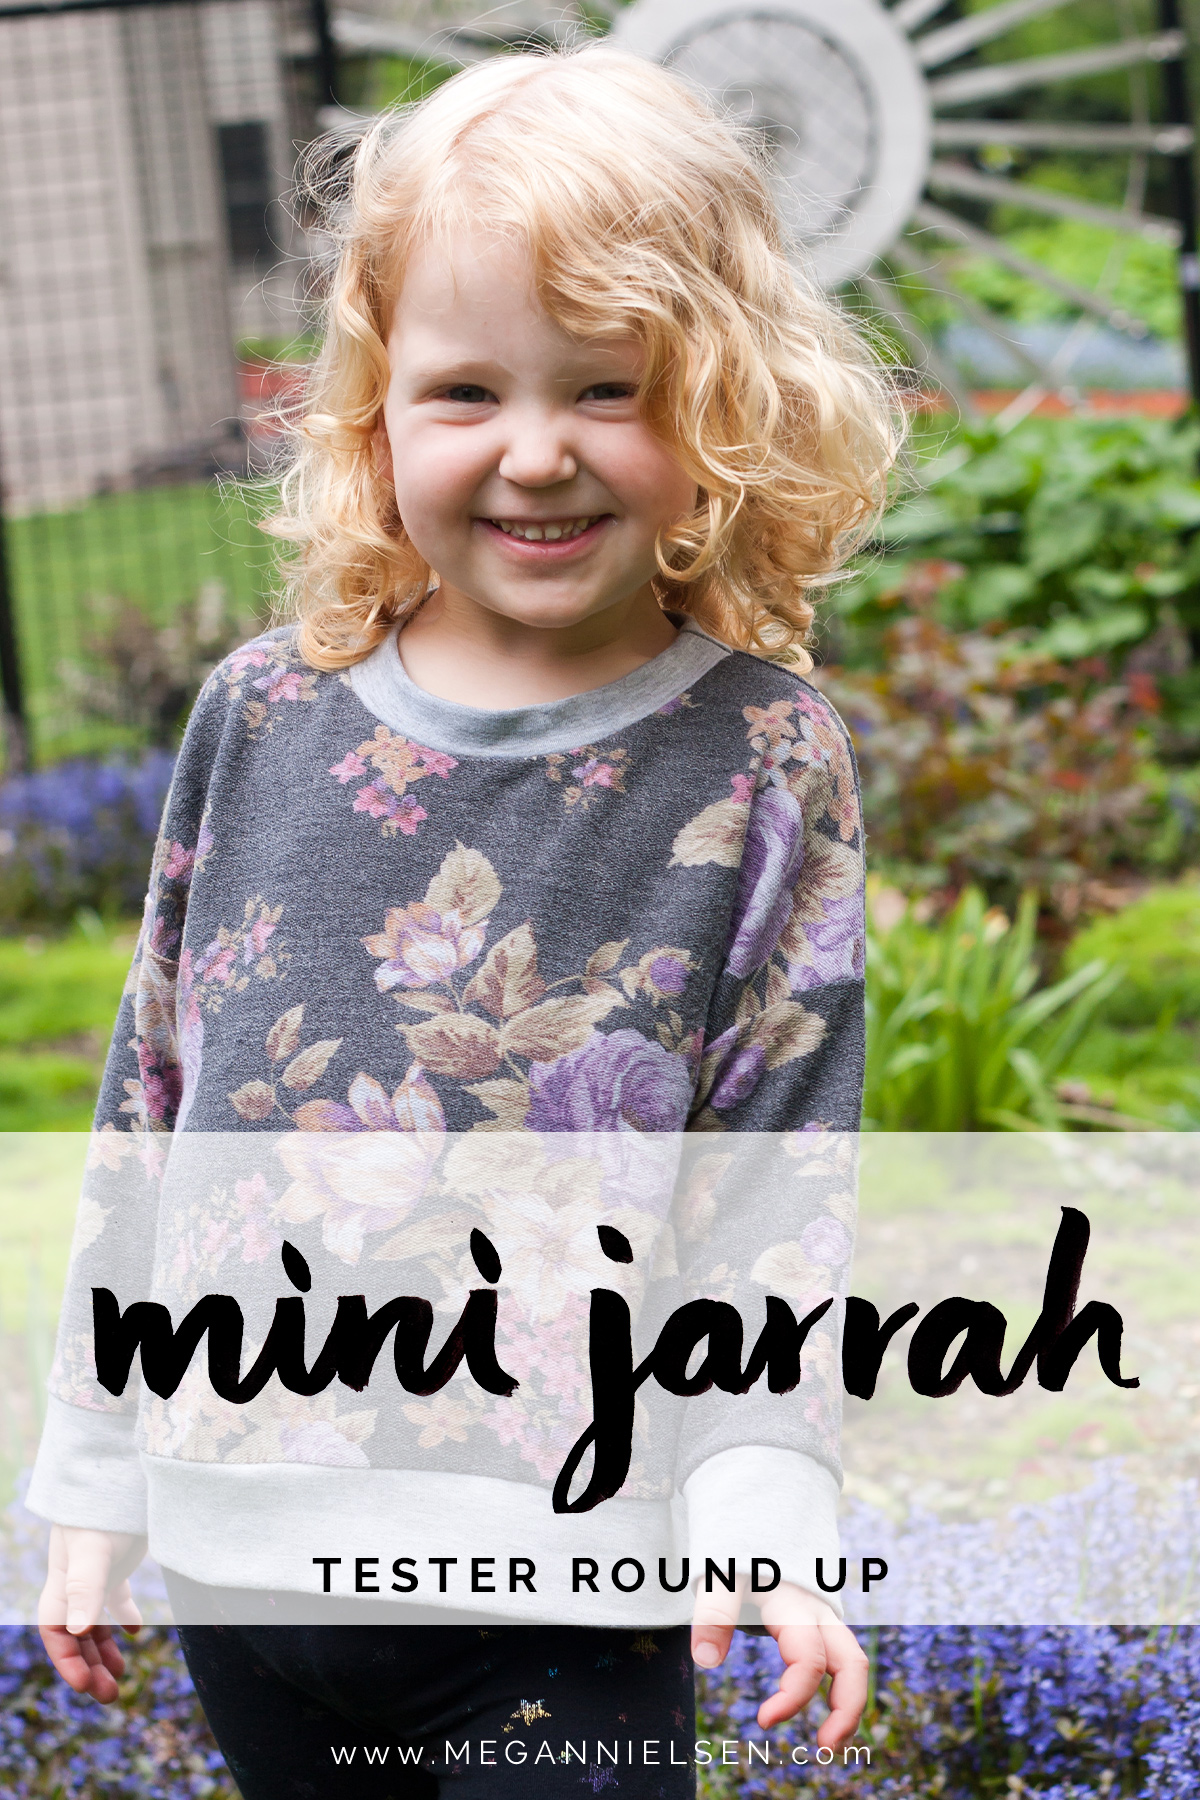 Mini Jarrah Tester Round Up